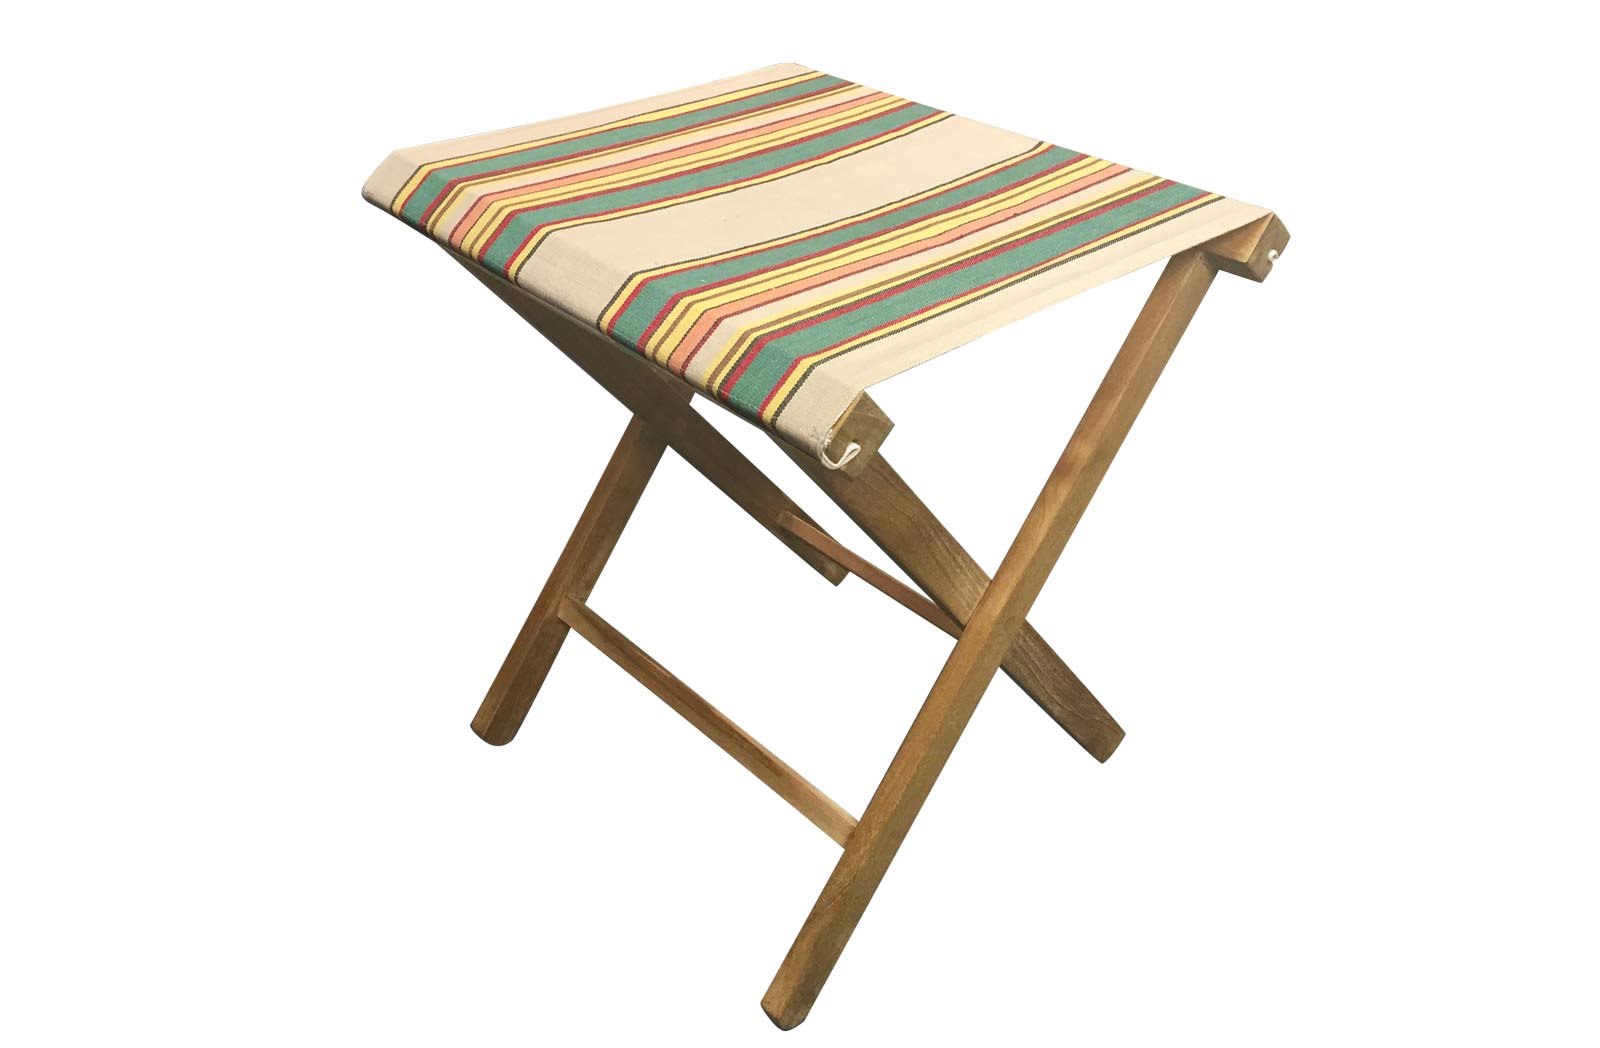 Portable Folding Stool with vintage look striped seat